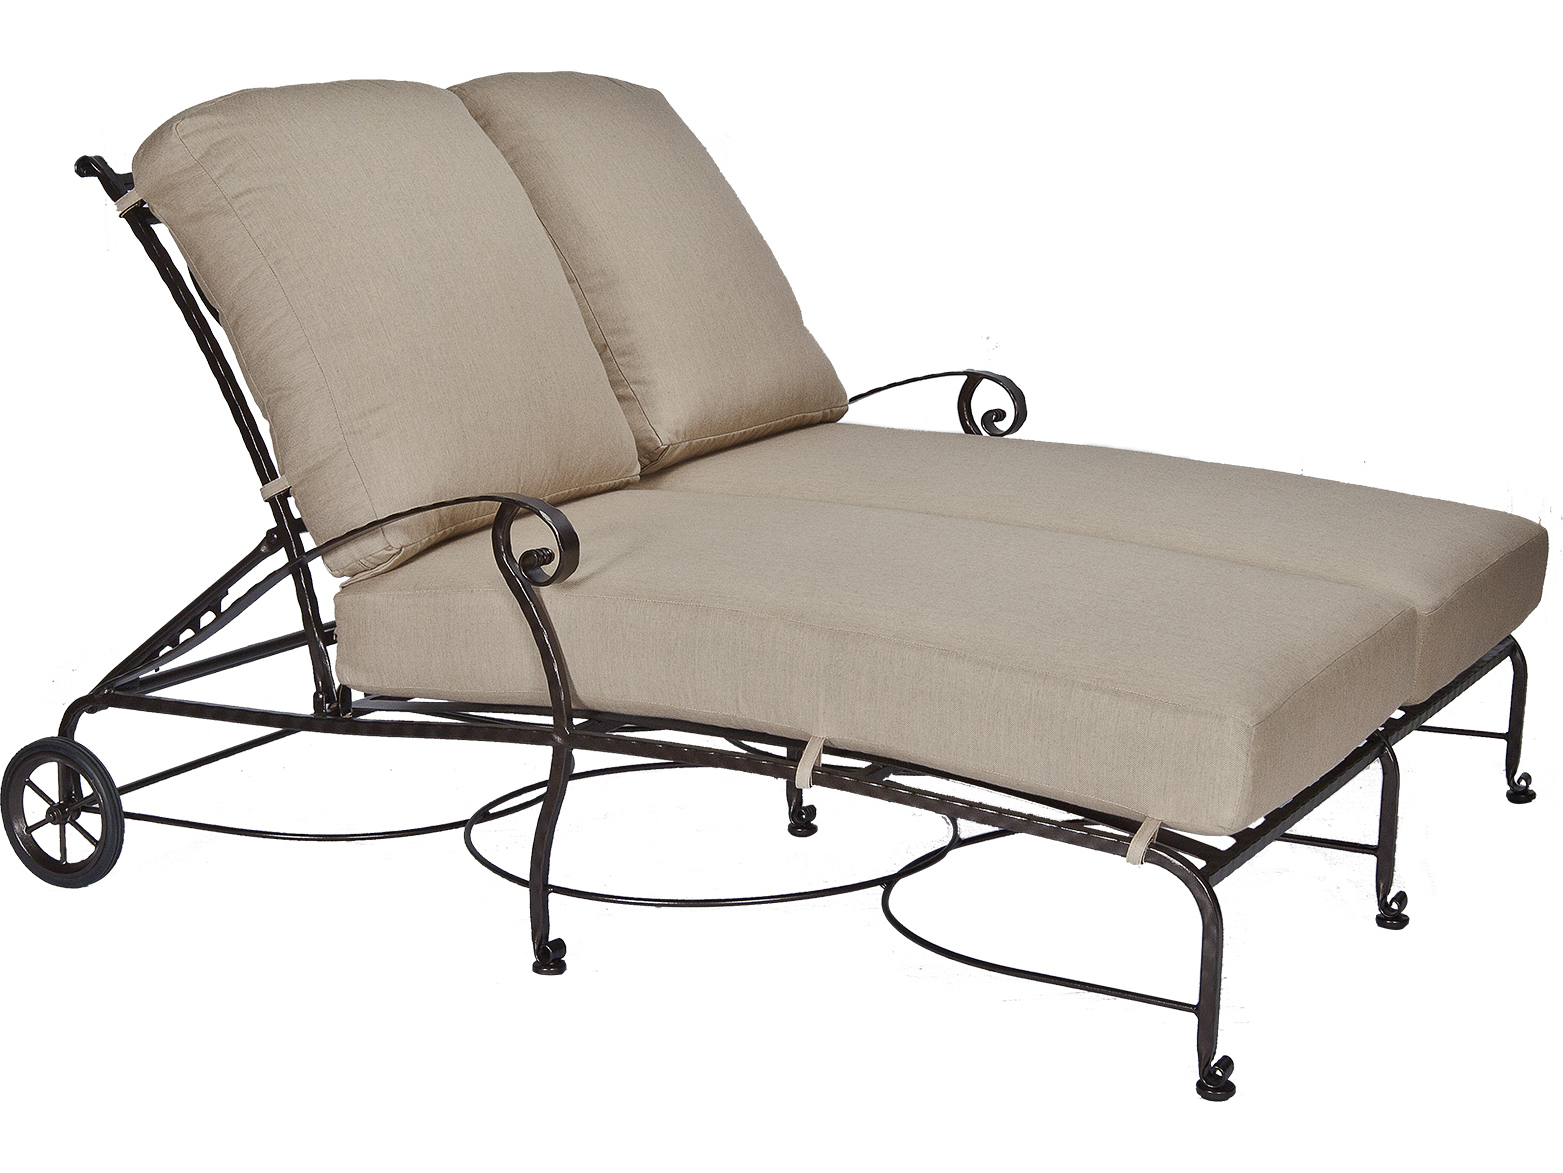 Ow lee san cristobal wrought iron double chaise lounge for Black wrought iron chaise lounge